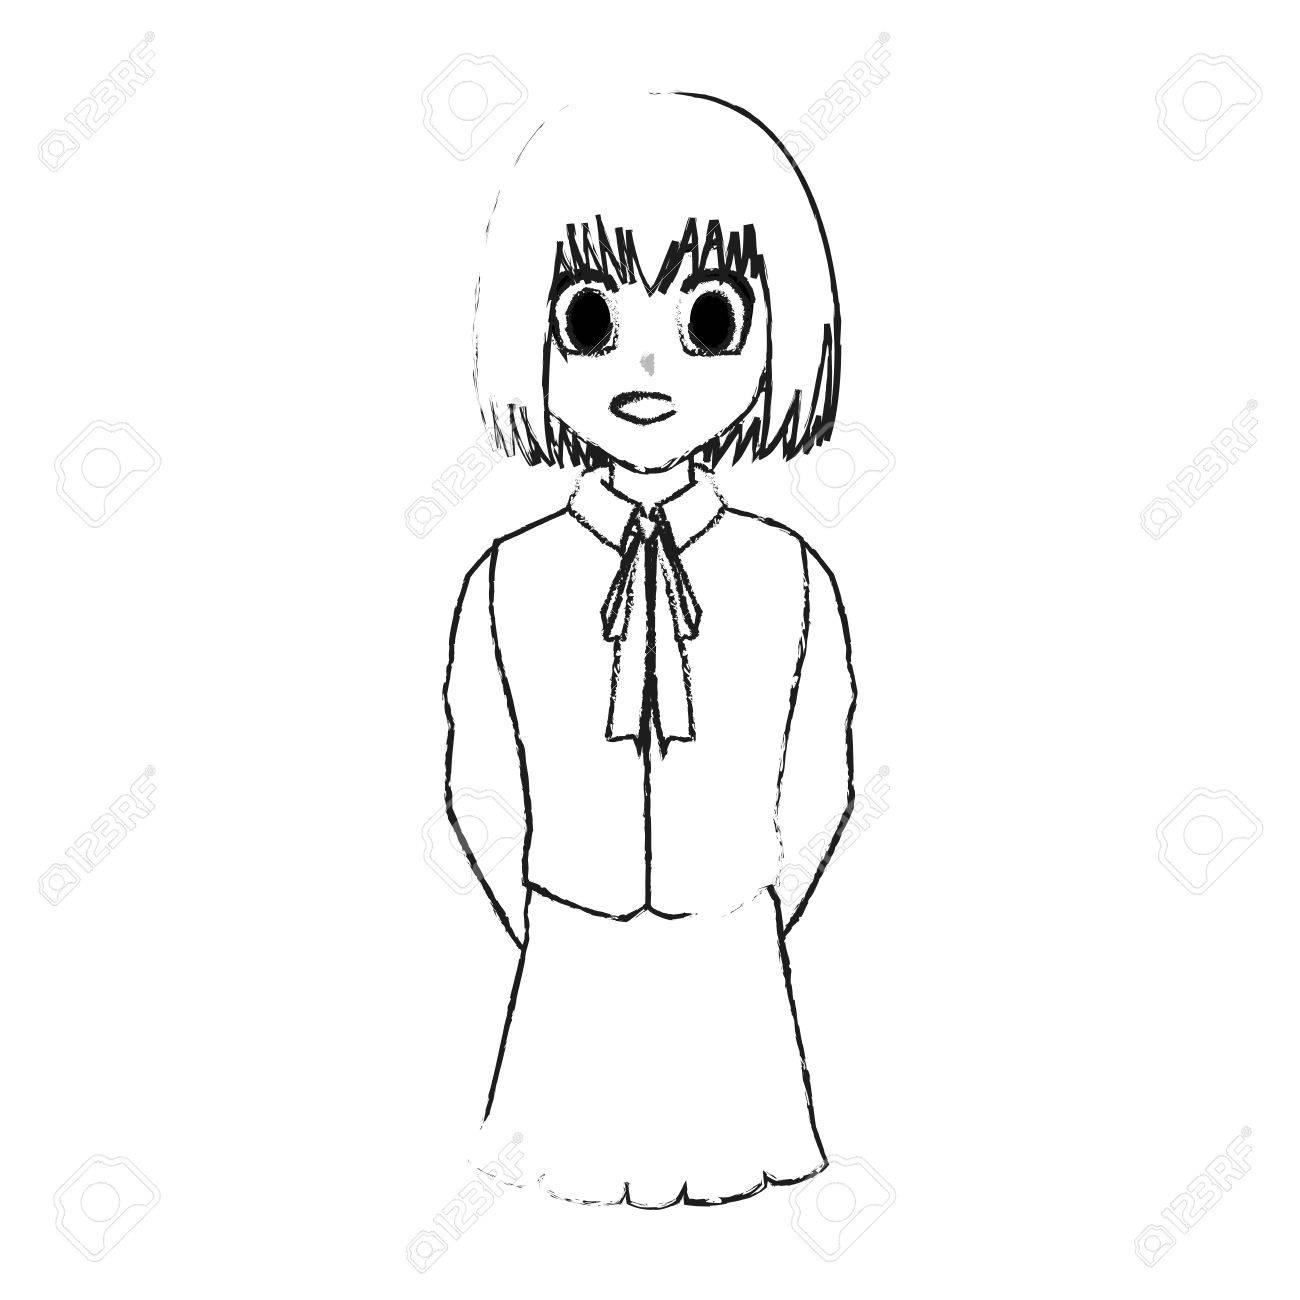 Cute Young Girl With Short Straight Hair Wearing School Uniform